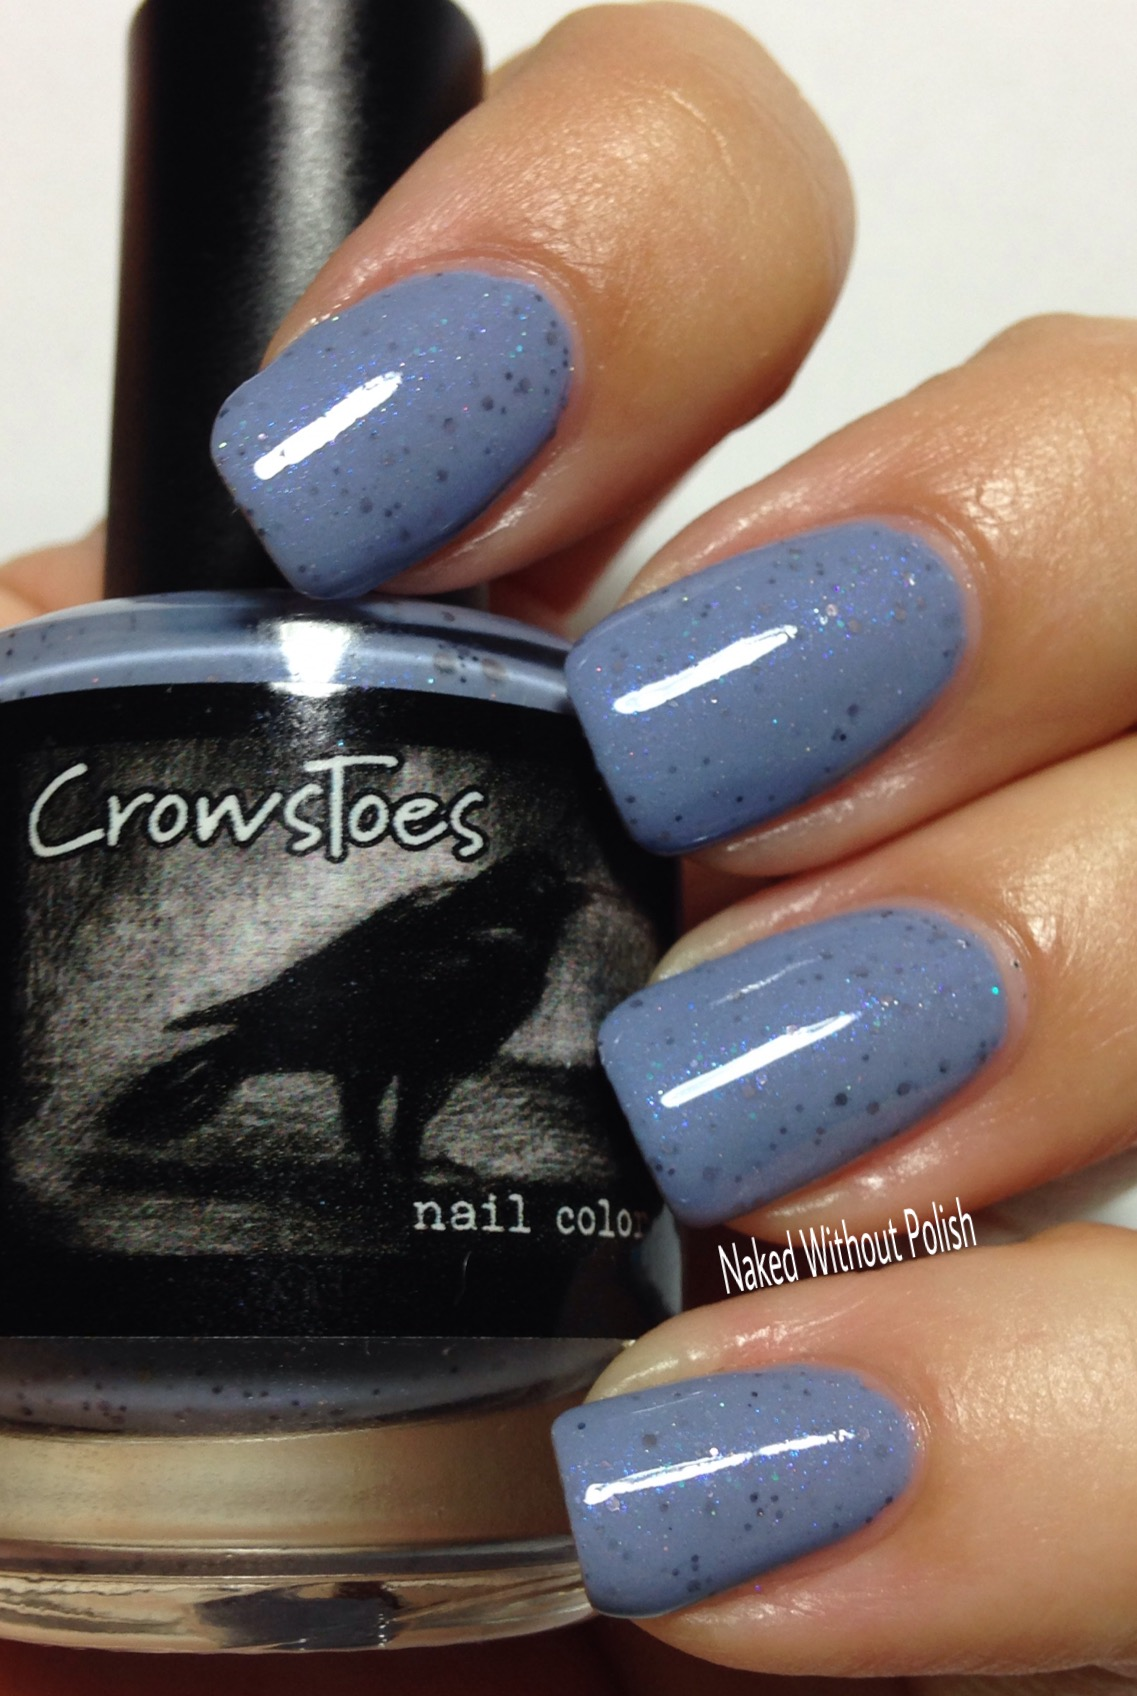 Polish-Pickup-Crows-Toes-Nail-Color-Mr-Average-Joe-American-11